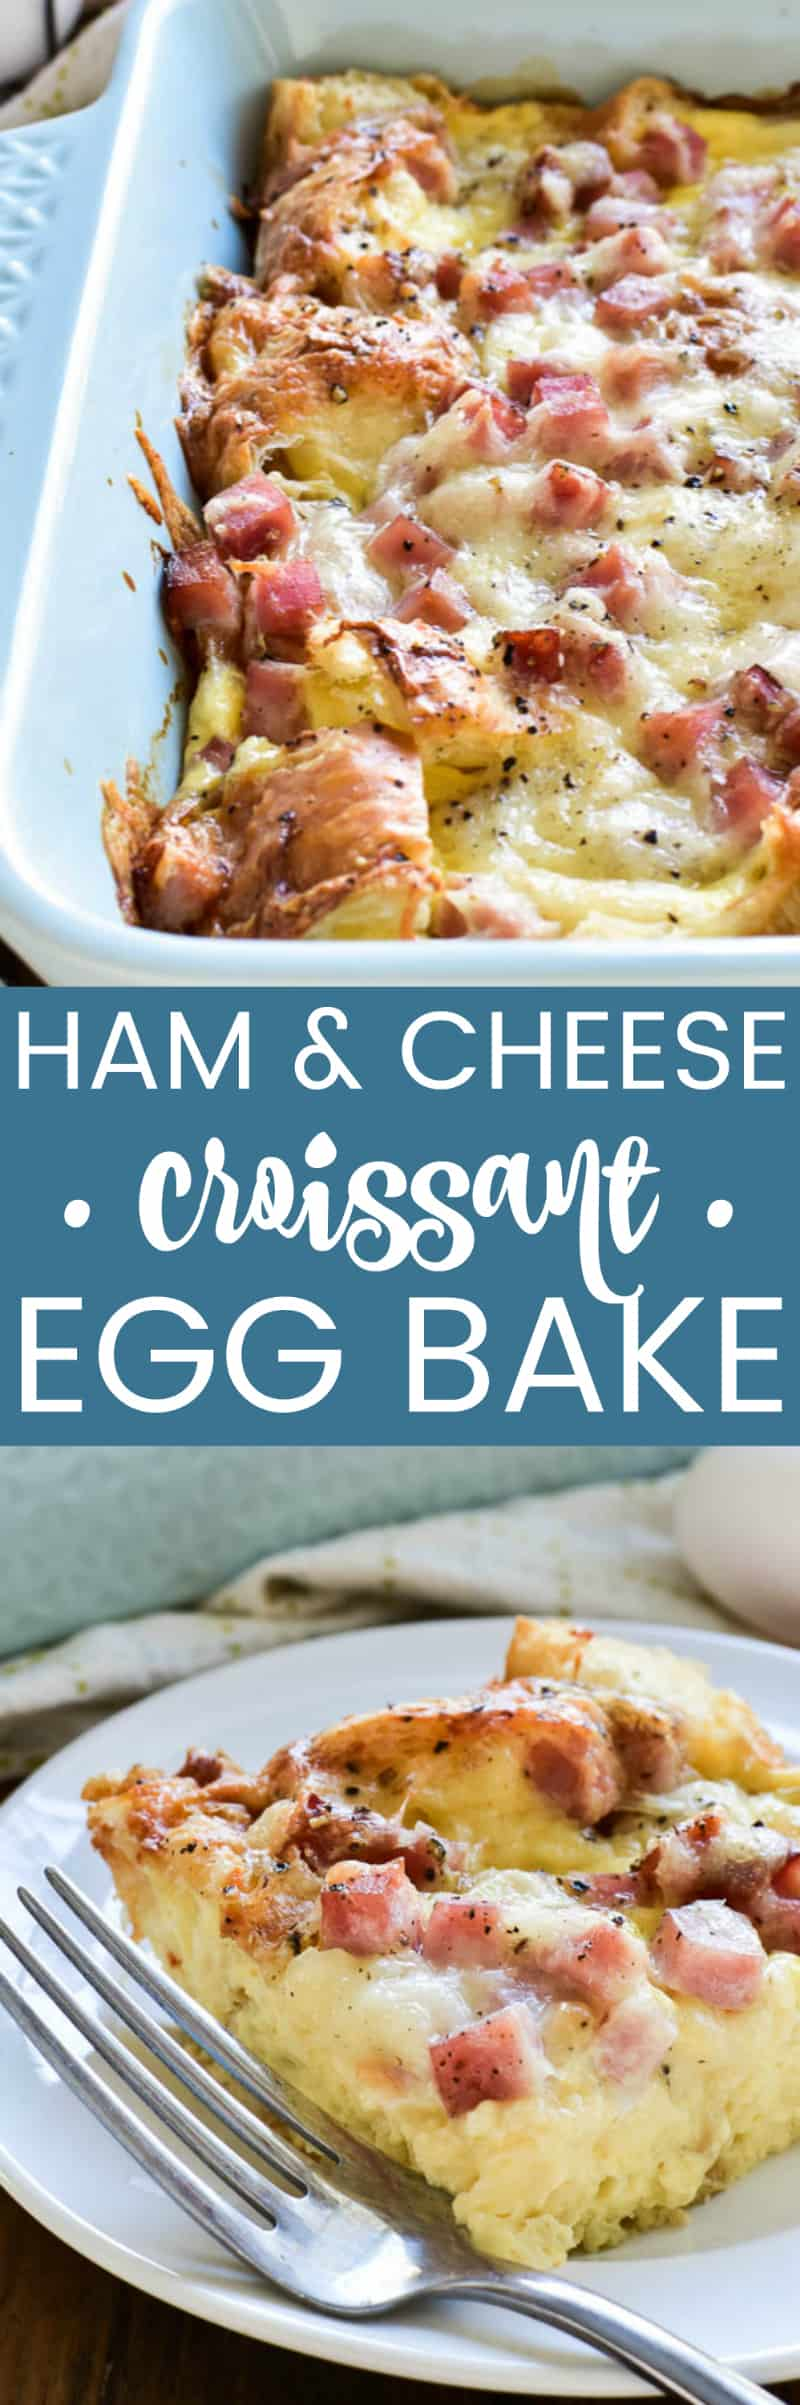 Collage image of Ham & Cheese Croissant Egg Bake